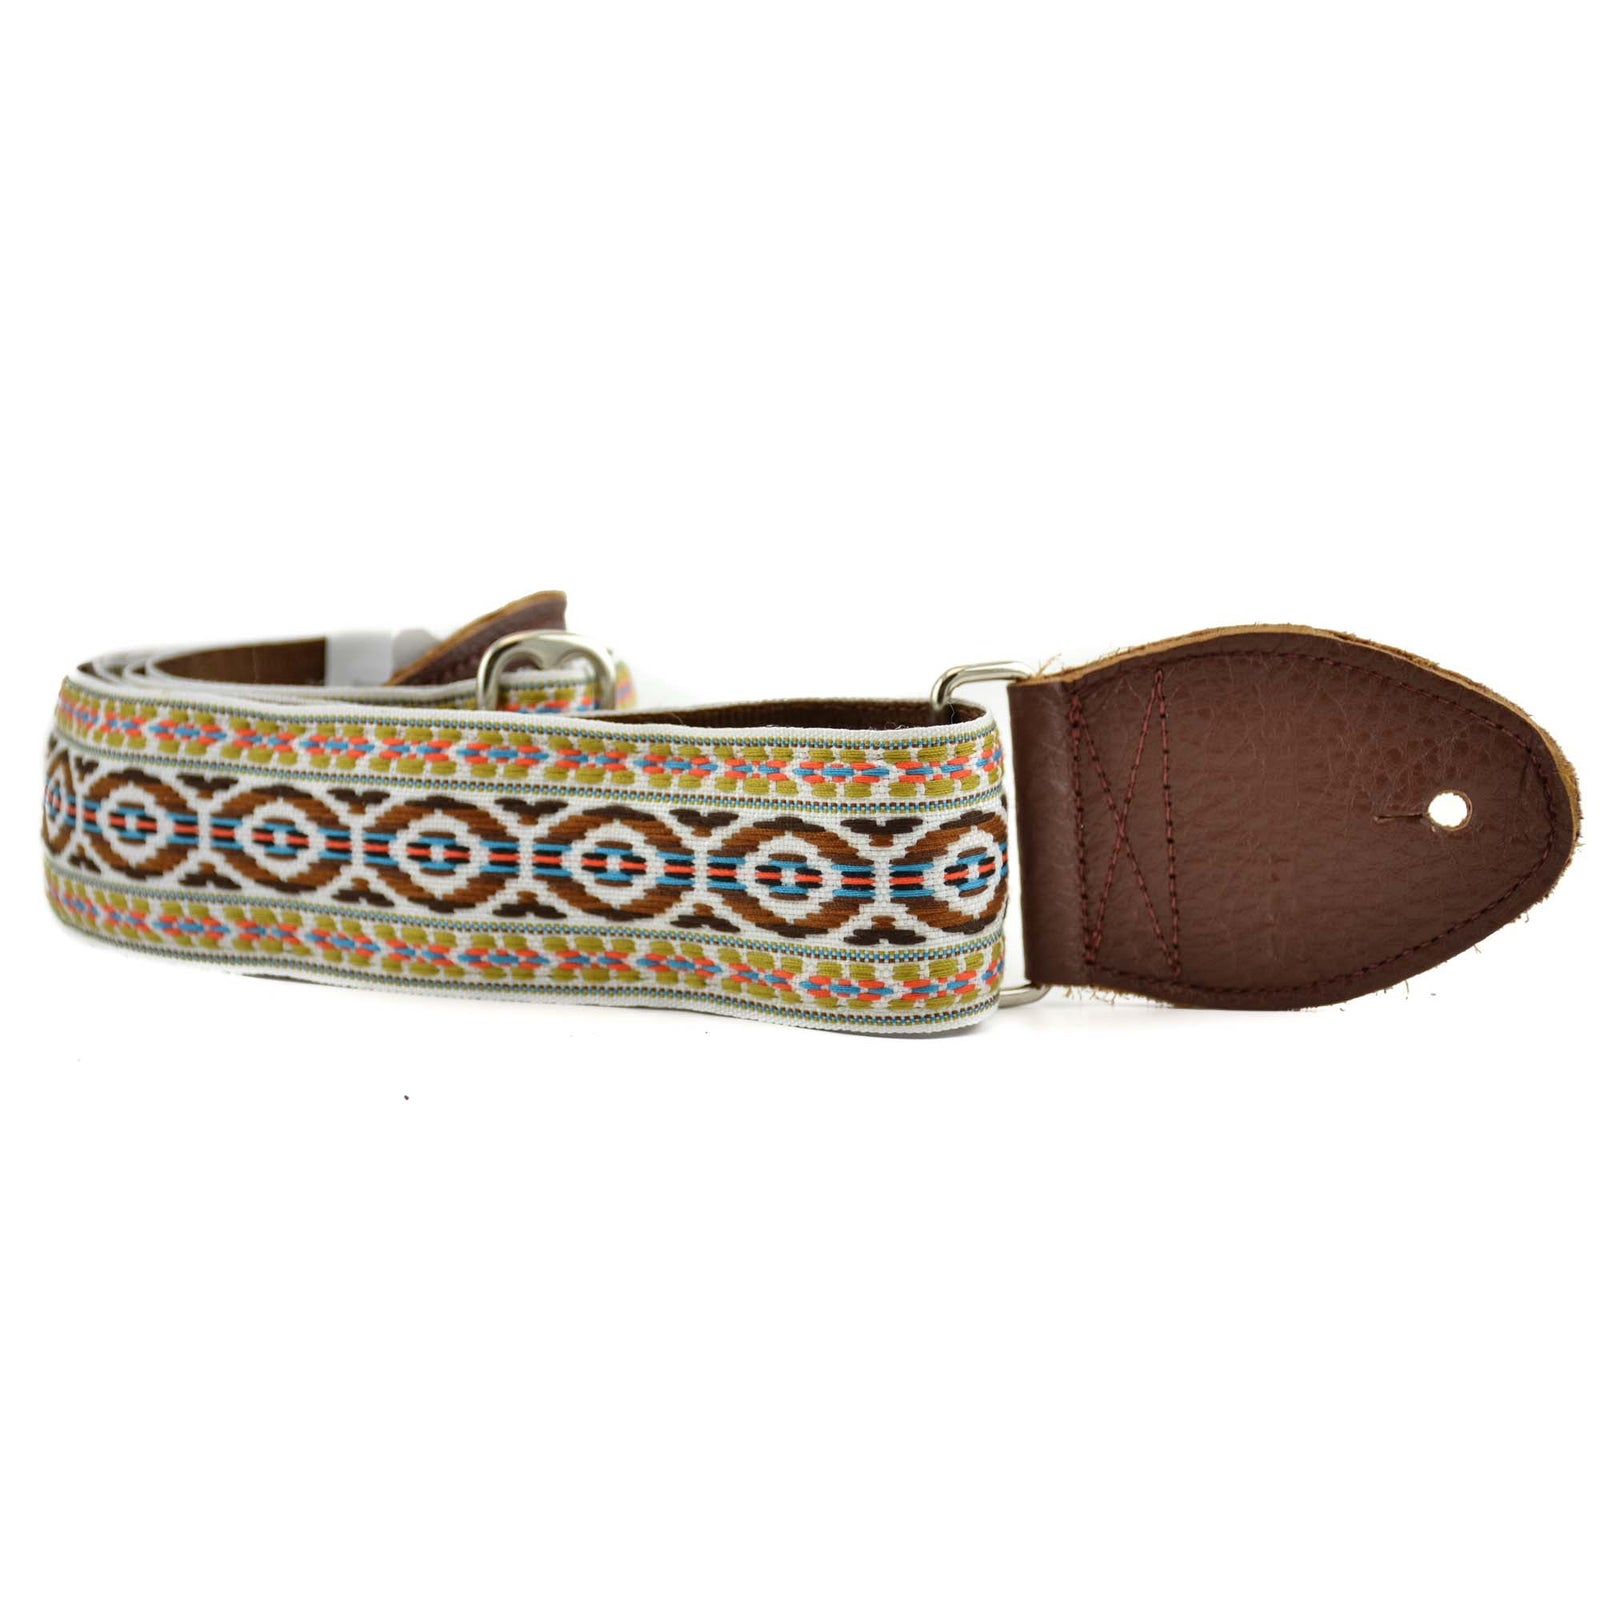 "Souldier 2"" Bohemian Strap - Brown/Turquoise O'S"